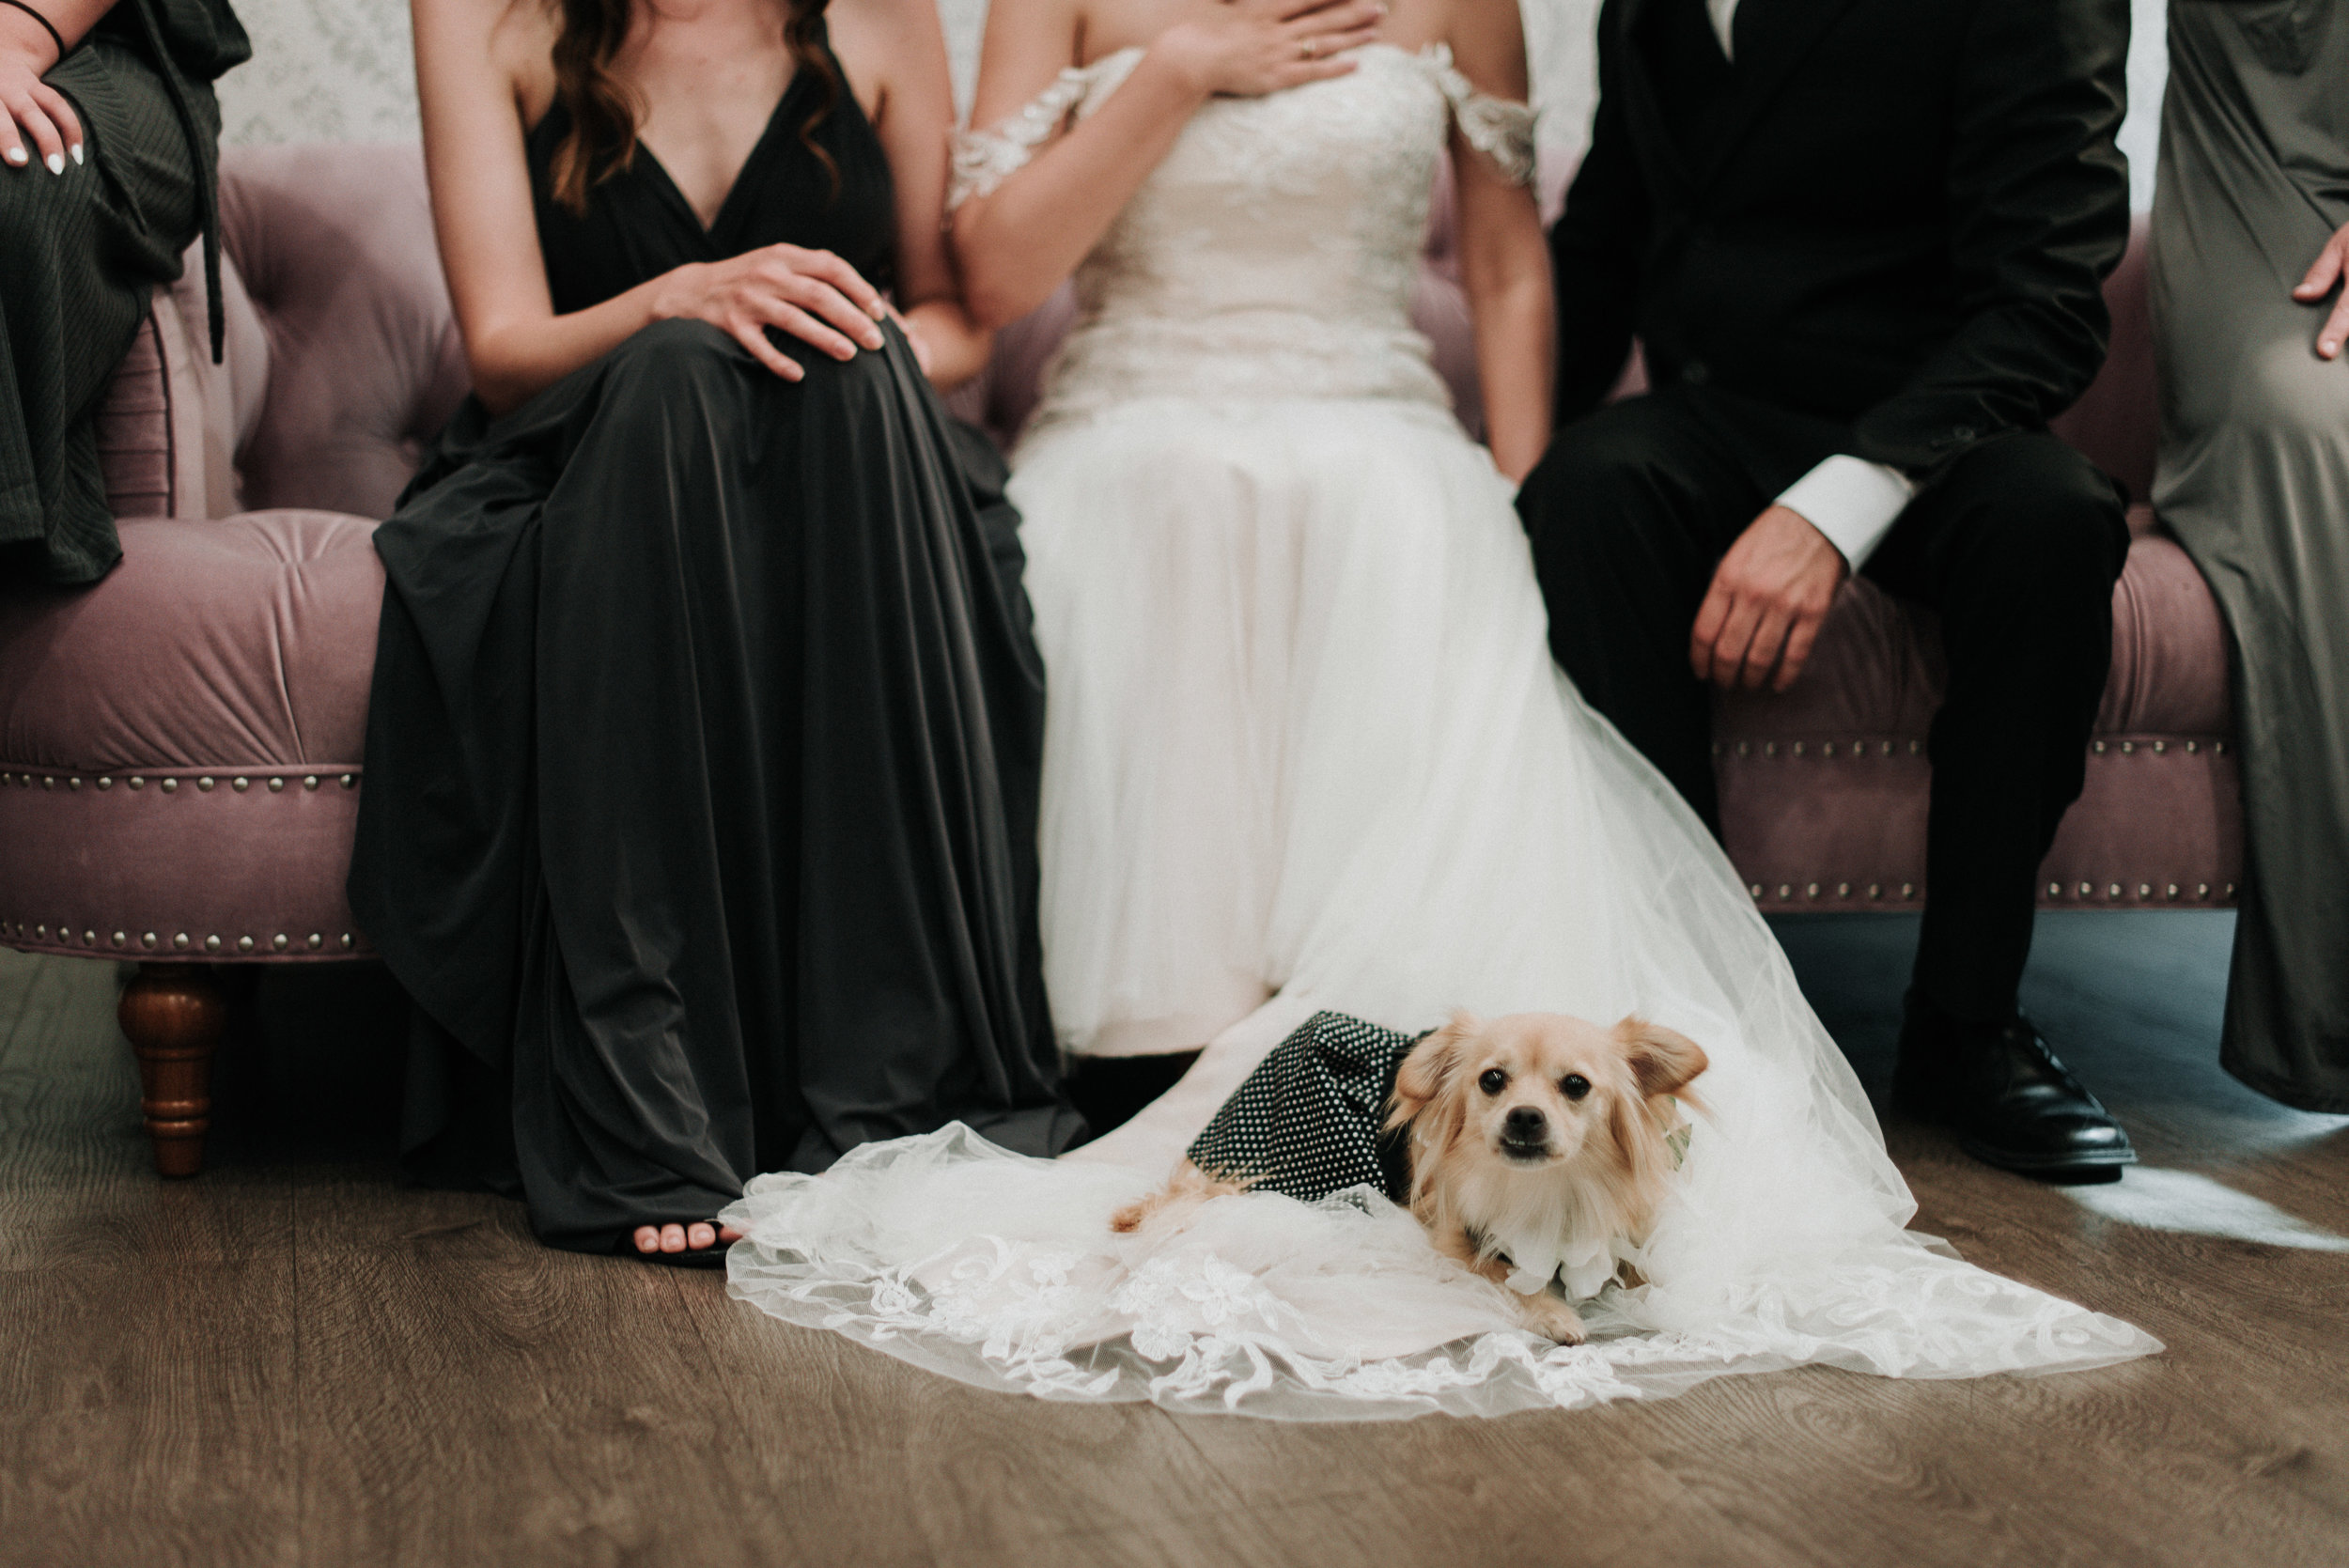 2019-07-21_Danielle_and_Brandon_-_Married_-_Costa_Mesa-87.jpg